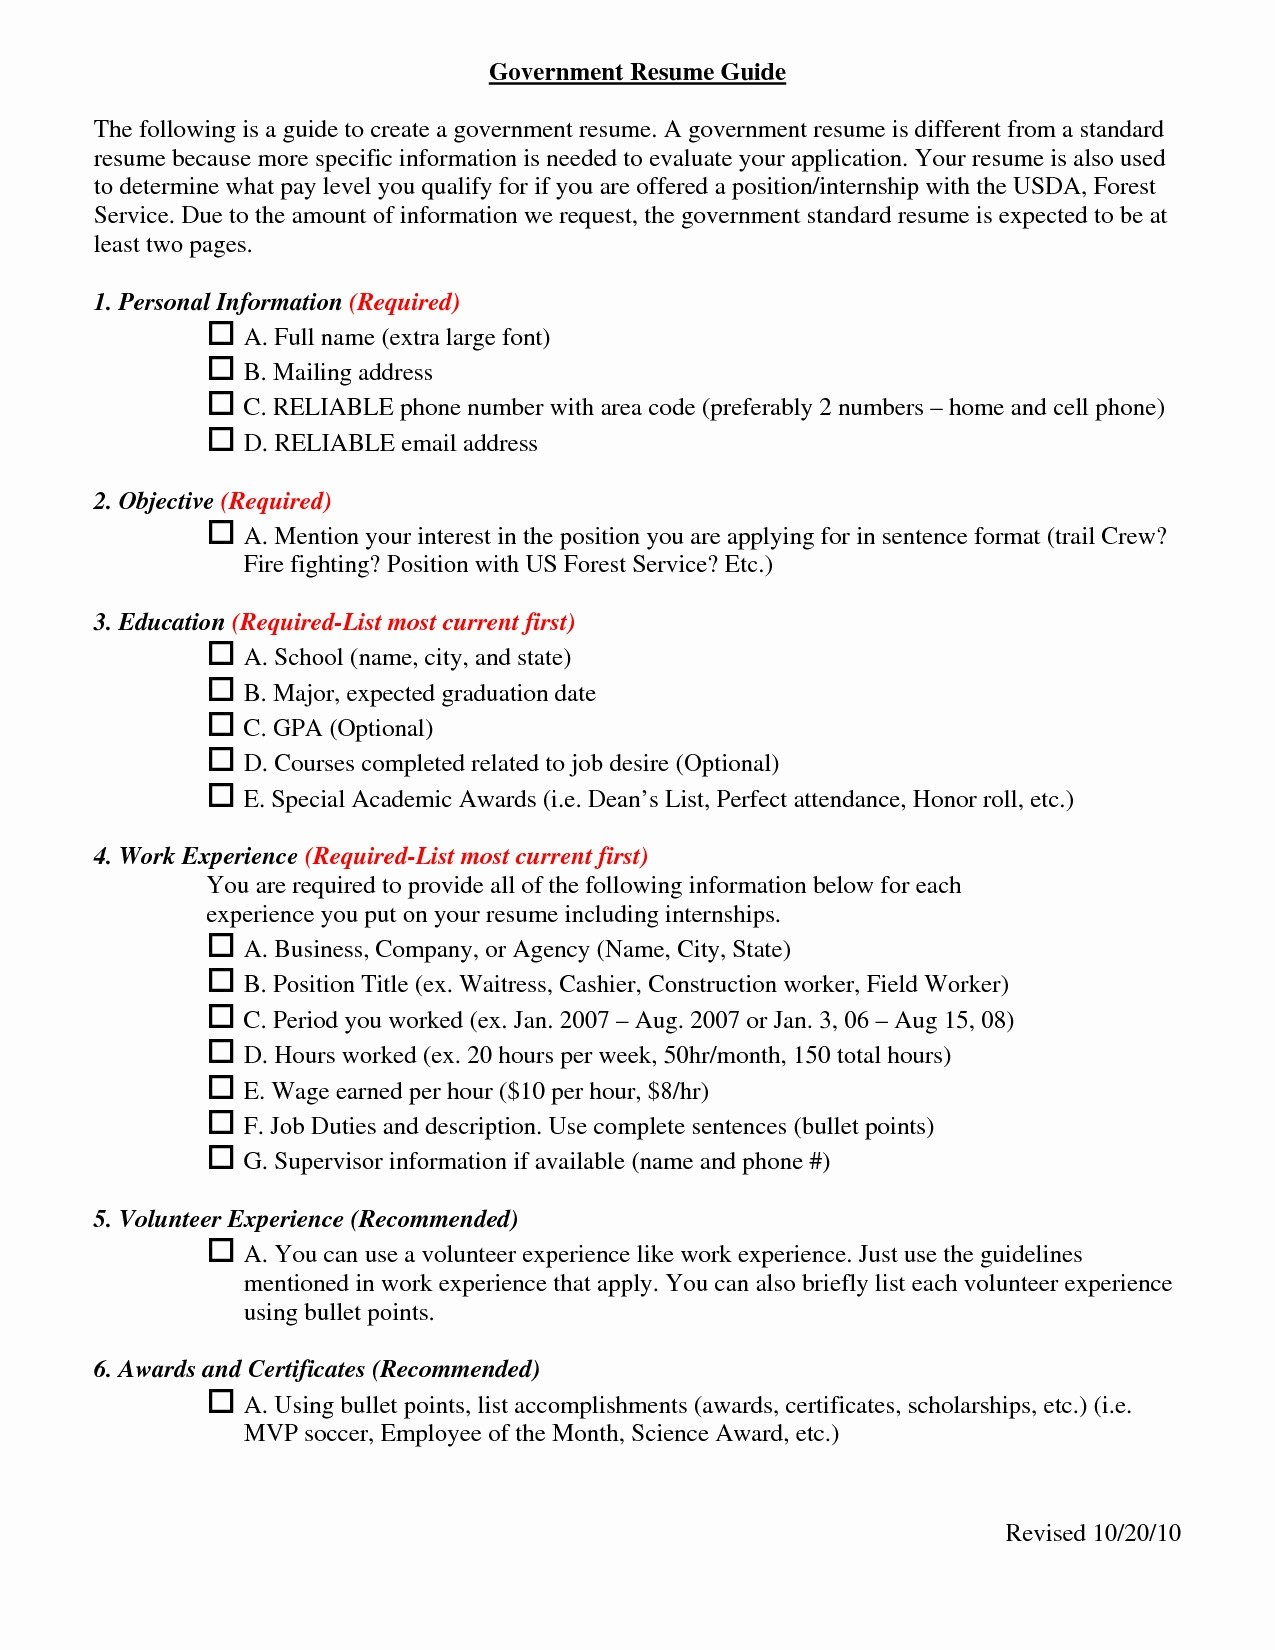 Housekeeping Job Description for Resume - 17 Housekeeping Job Description for Resume